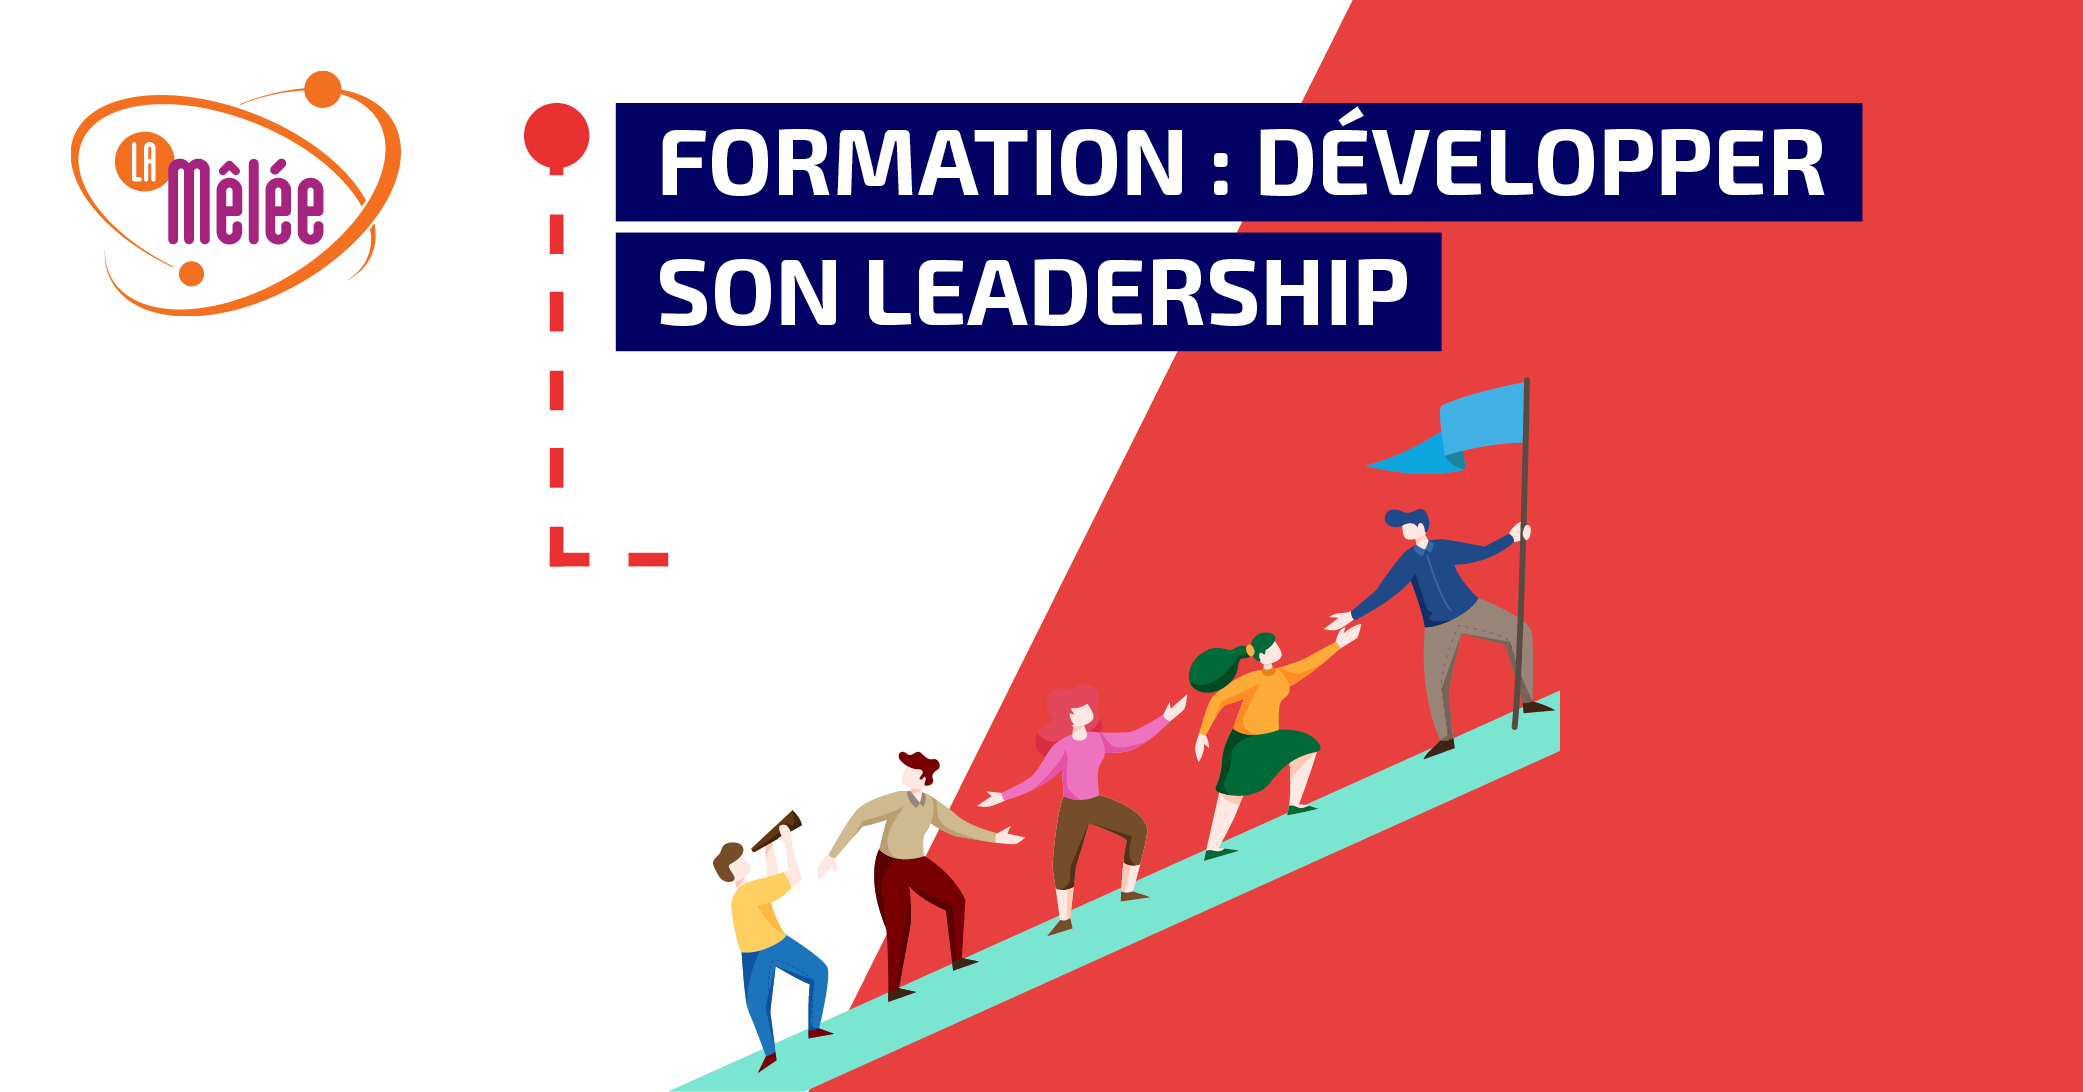 1572352956-formationdeveloppersonleadership.jpg